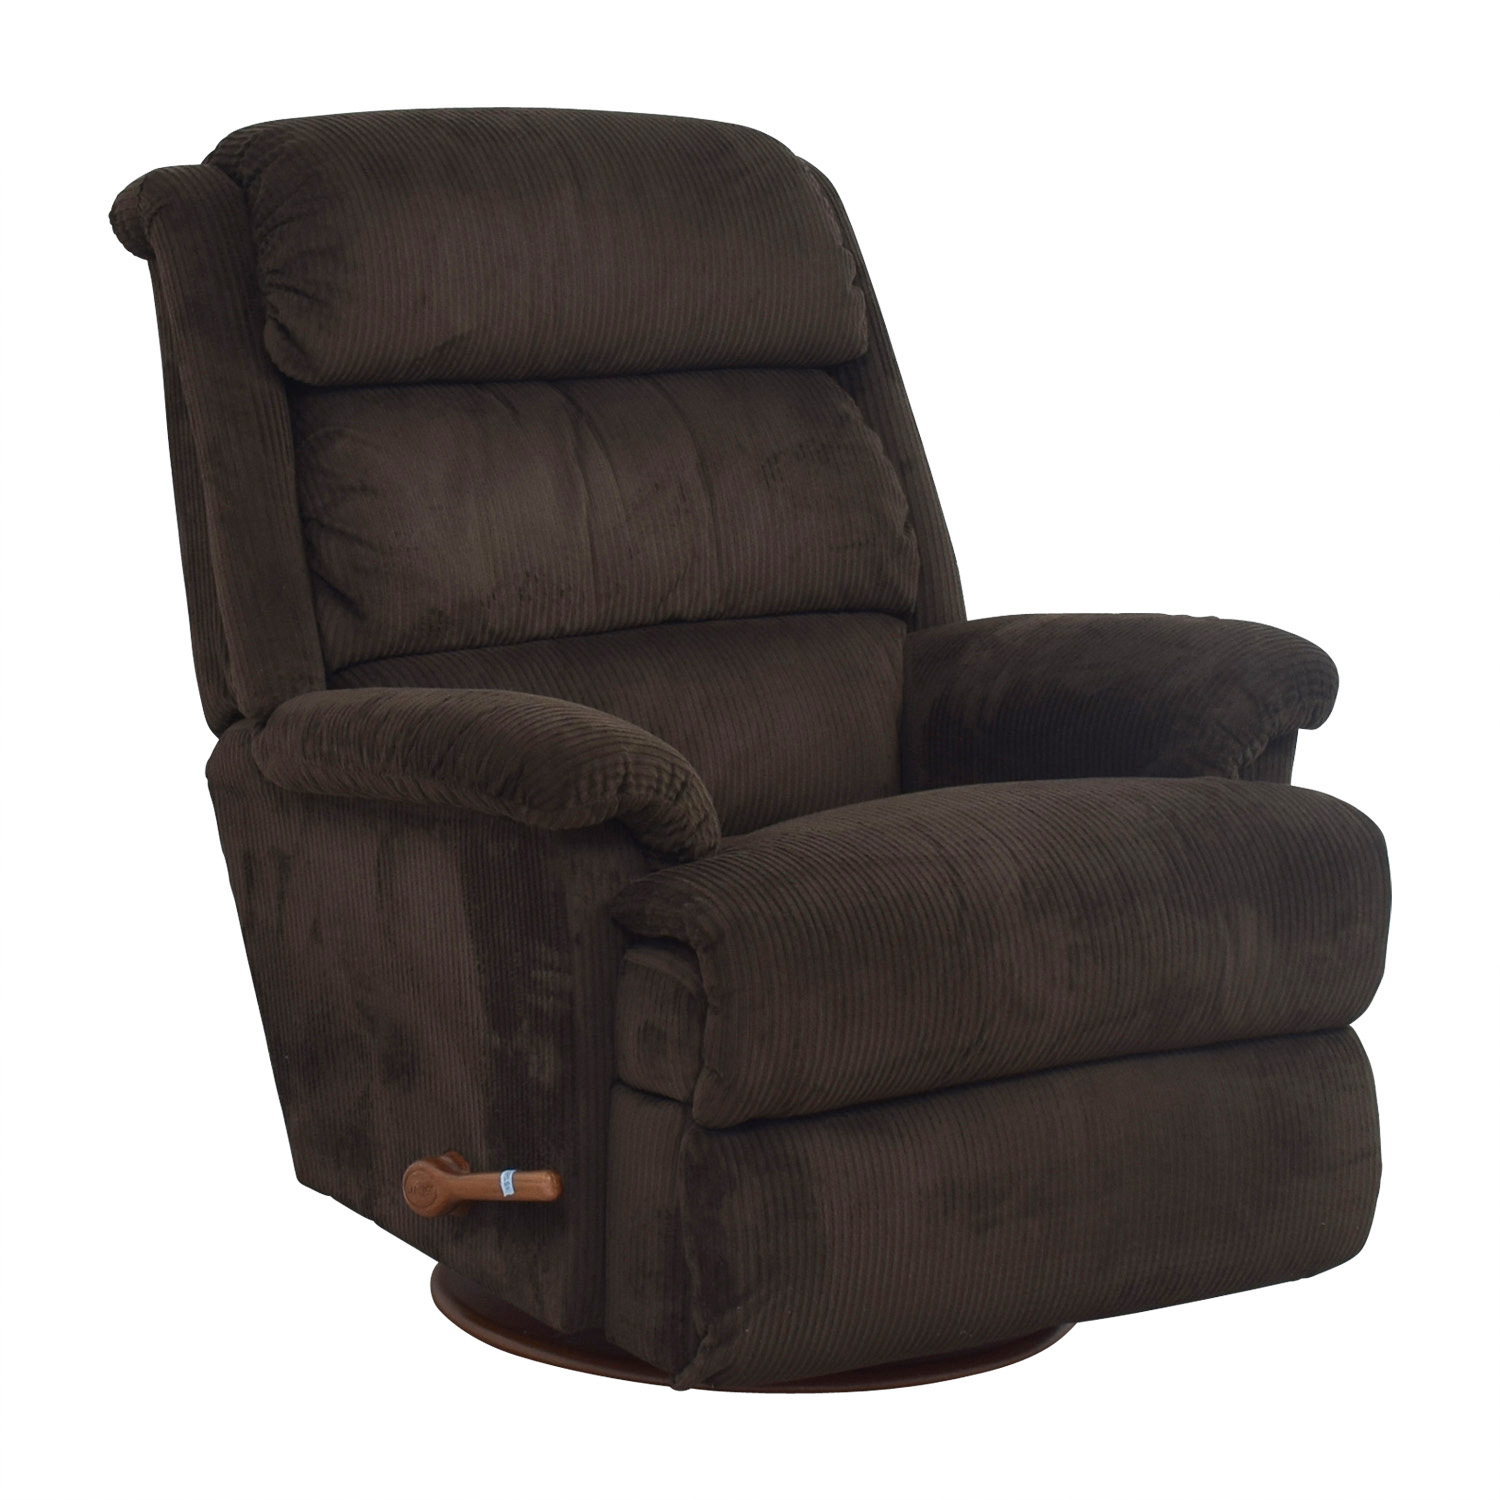 macy chairs recliners arm chair set 68% off - lay-z-boy brown recliner /